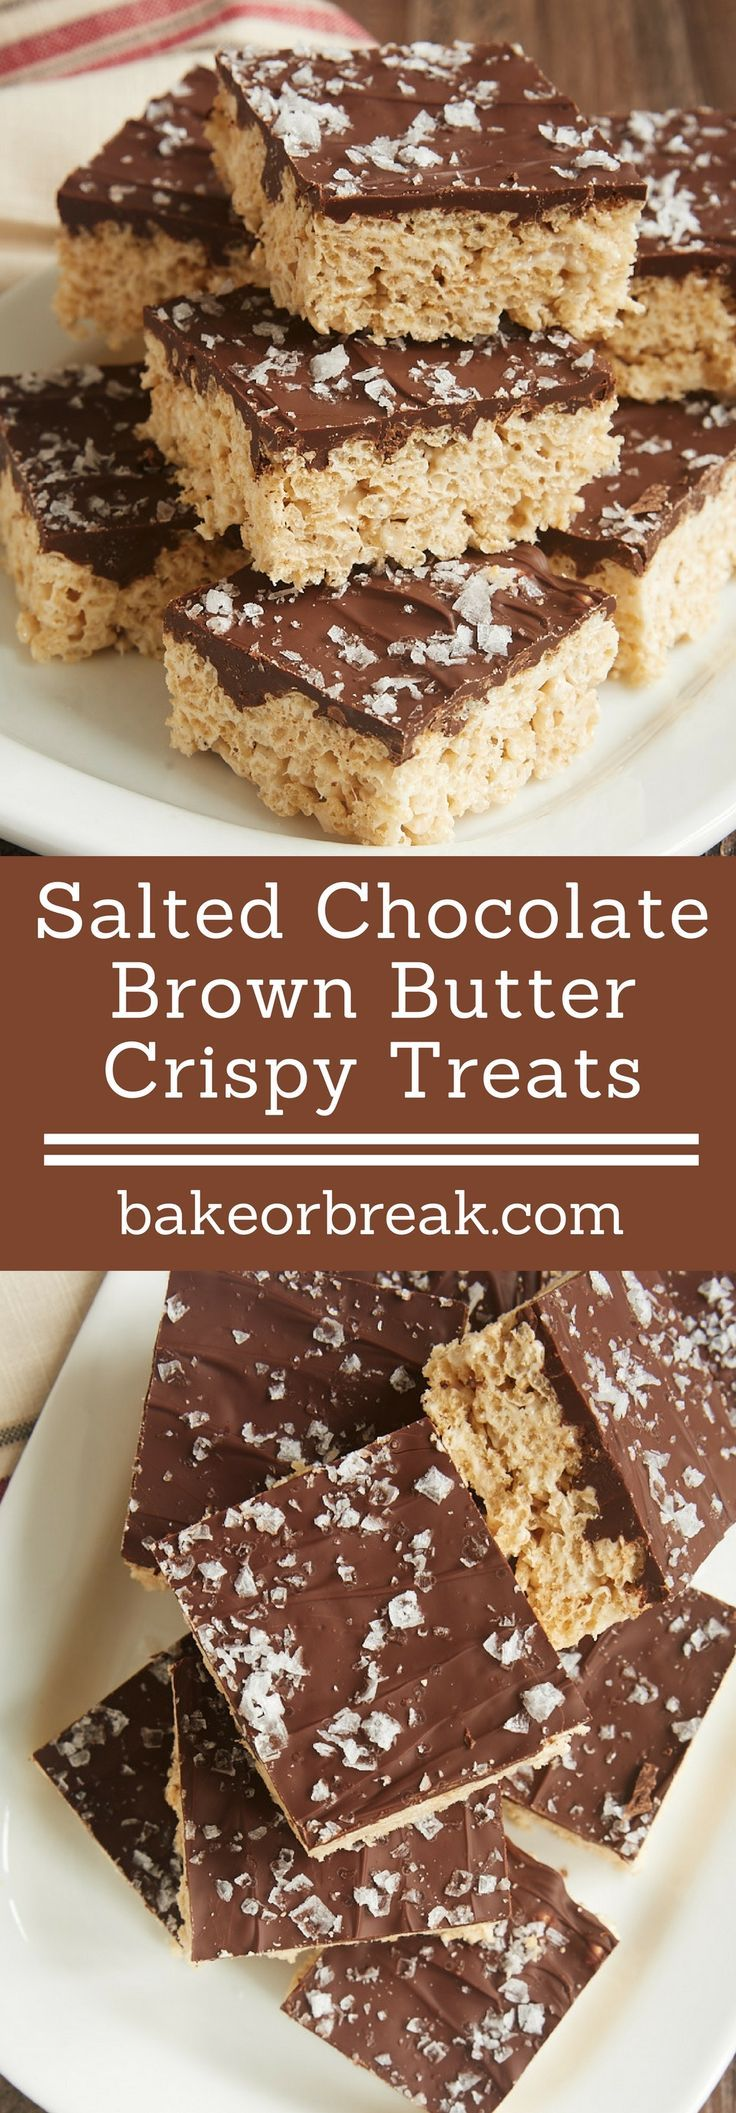 Salted Chocolate Brown Butter Crispy Treats are not your childhood crispy treats. They take that timeless classic dessert and turn them into a delicious dessert with grown-up flavors. - Bake or Break